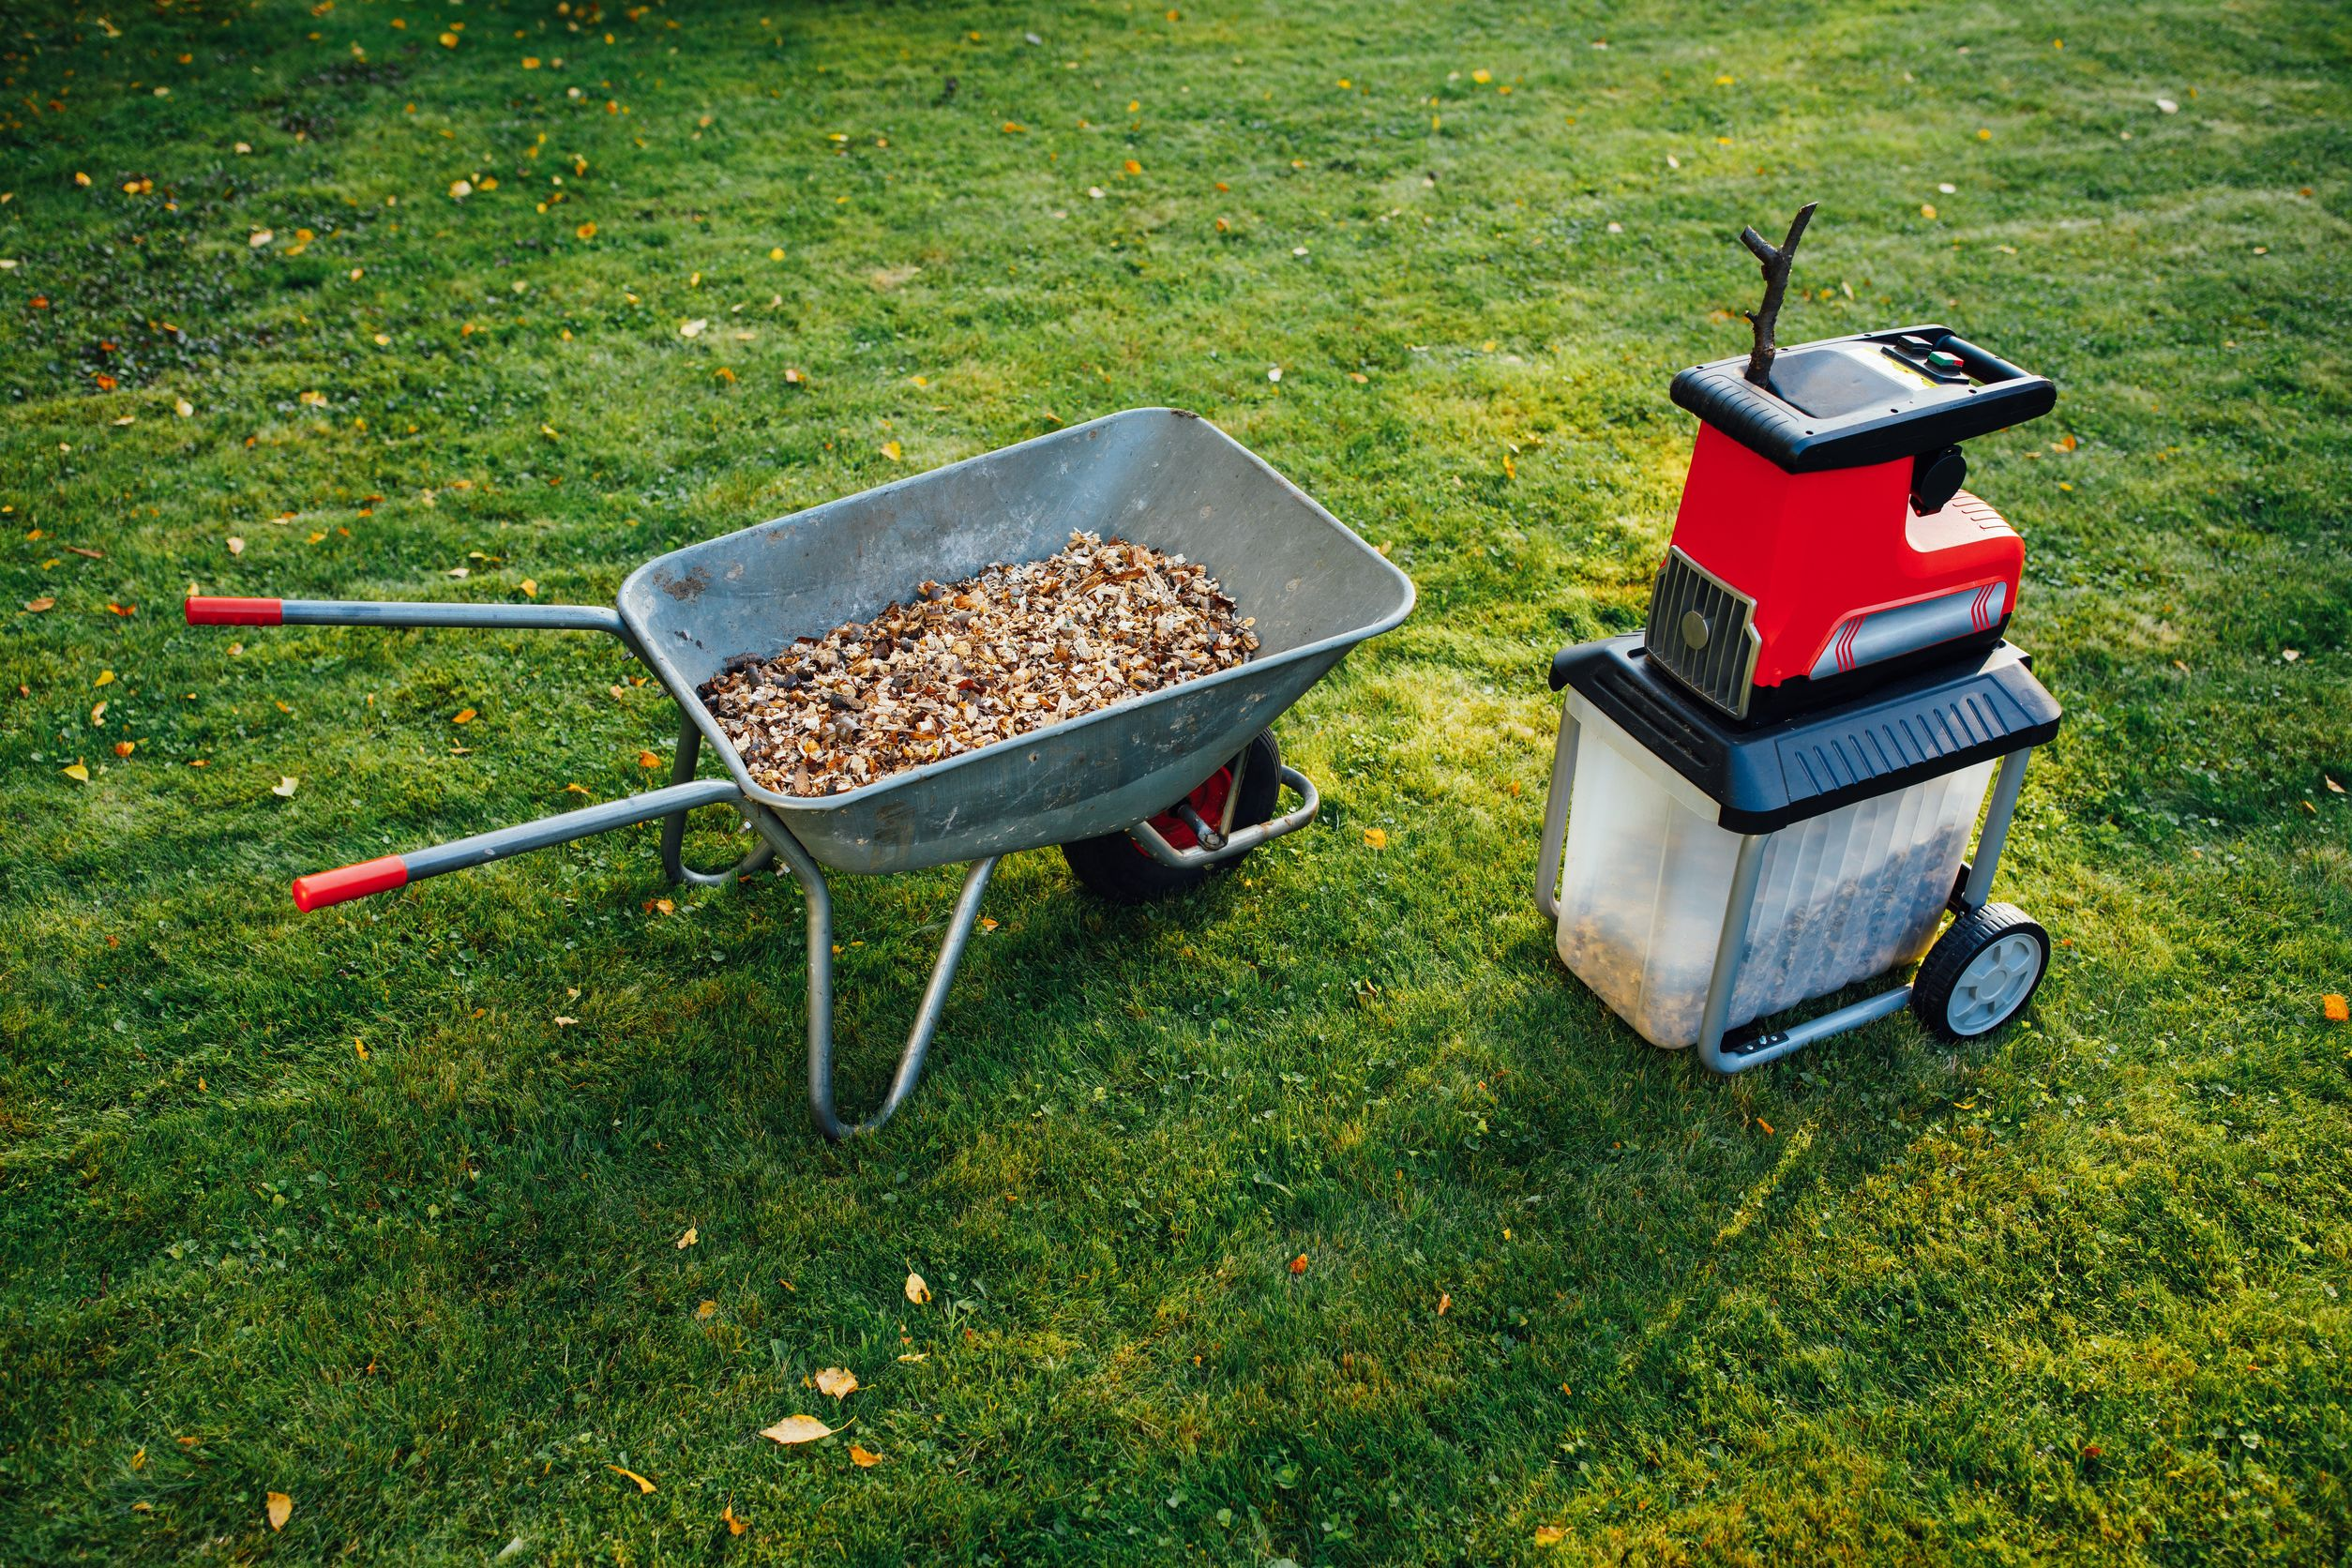 The Best Wood Chipper: Shopping Guide and Recommendations (09/21)